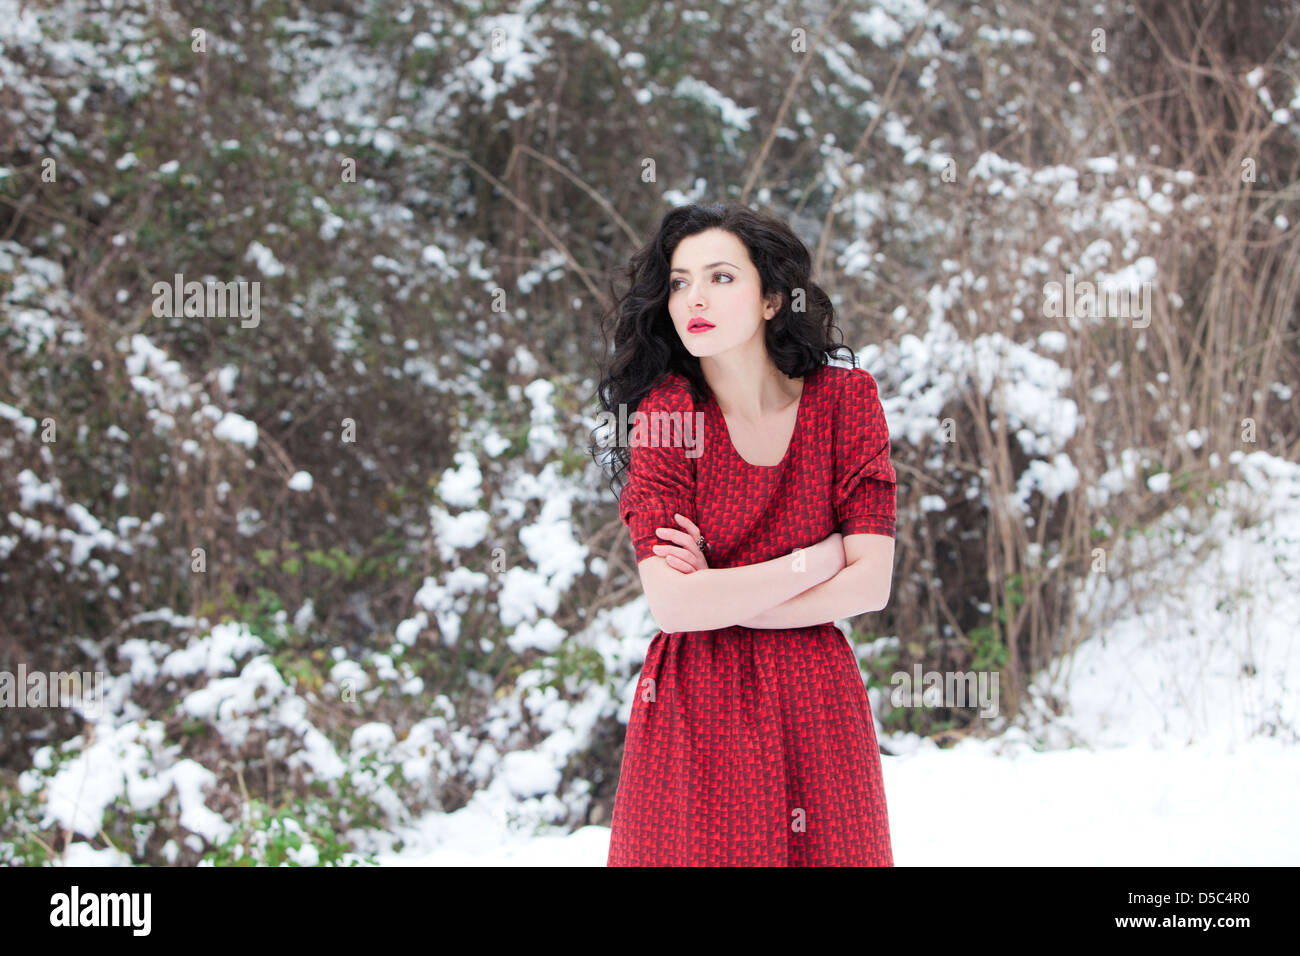 shivering woman and snow stock photos shivering woman and snow